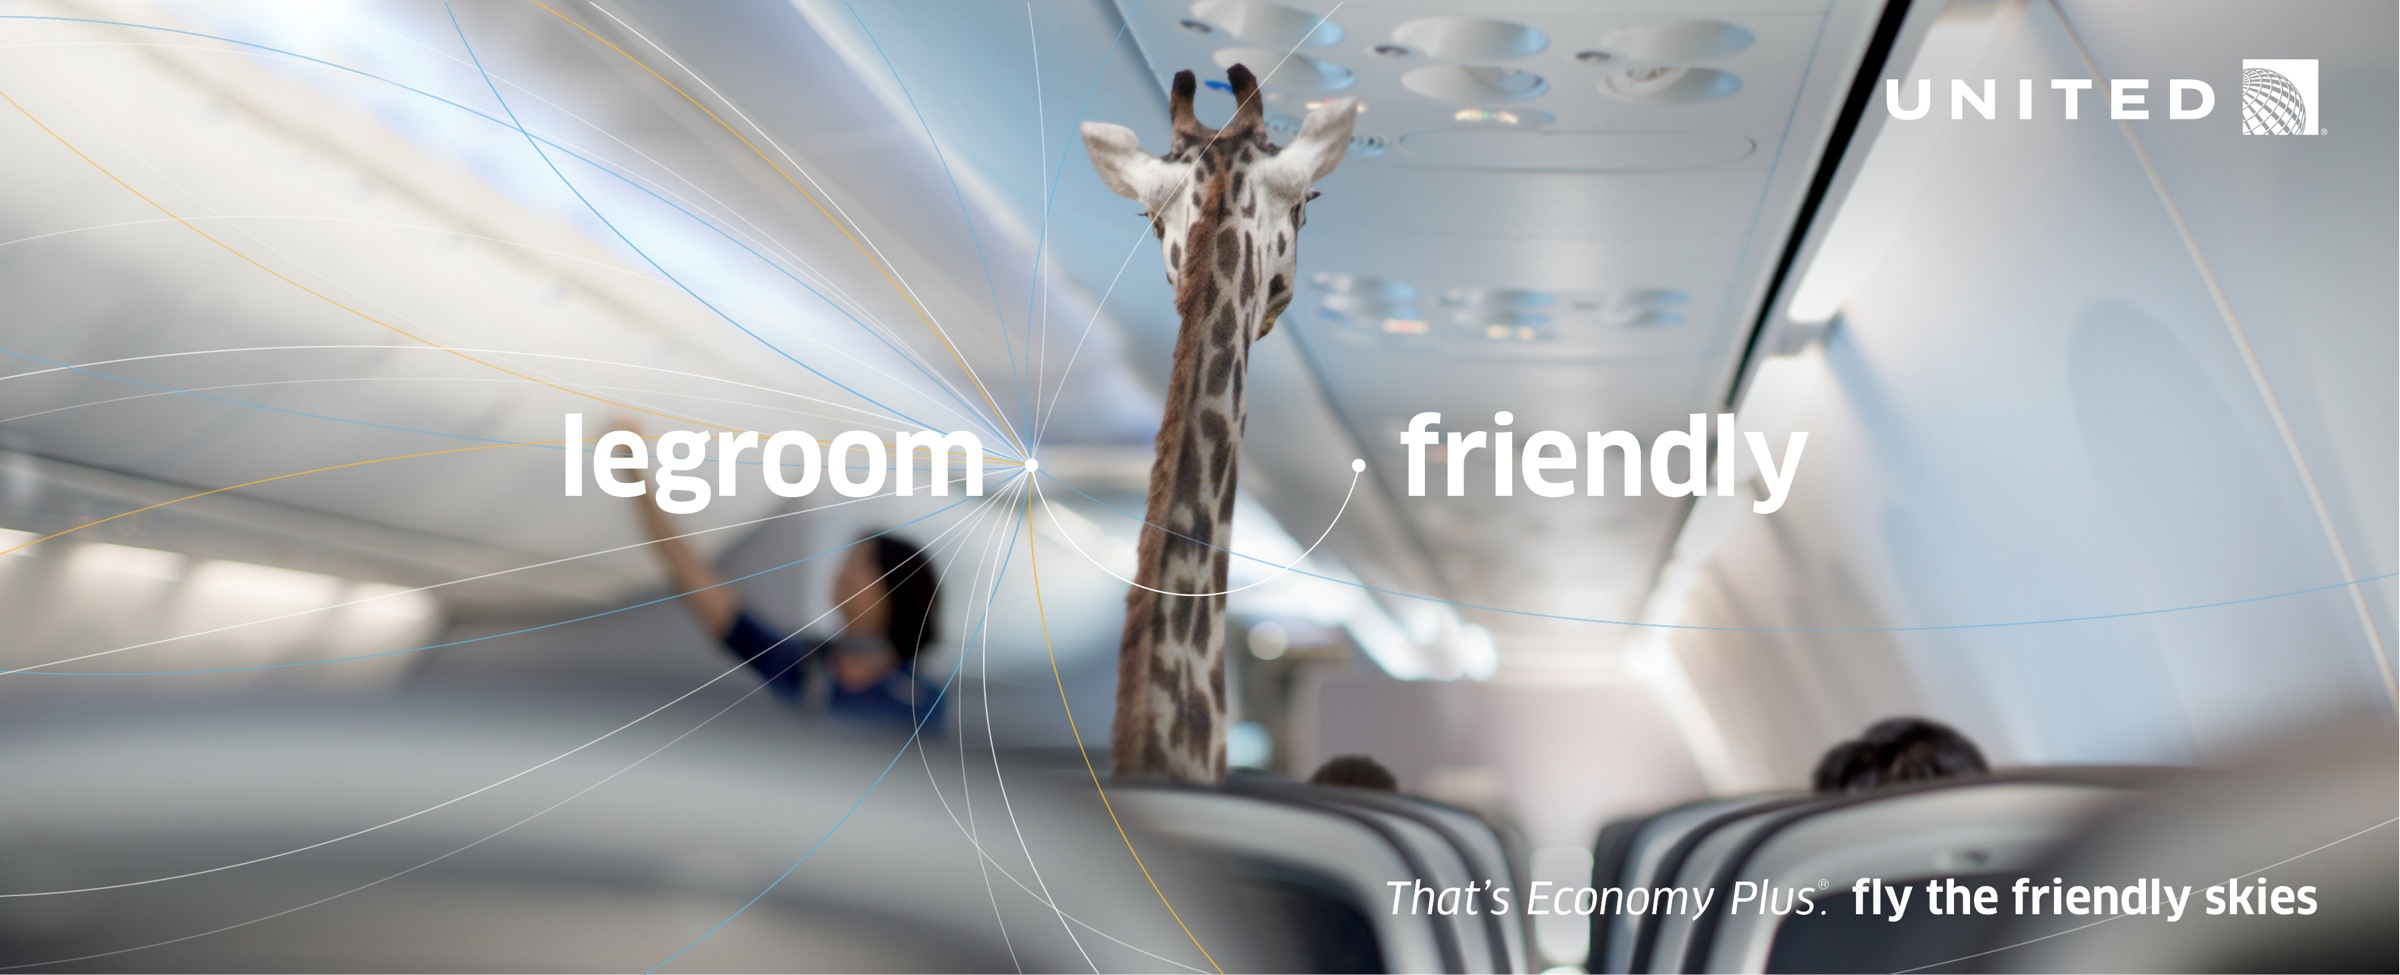 United Airlines_ad_commercial_giraffe_economy plus